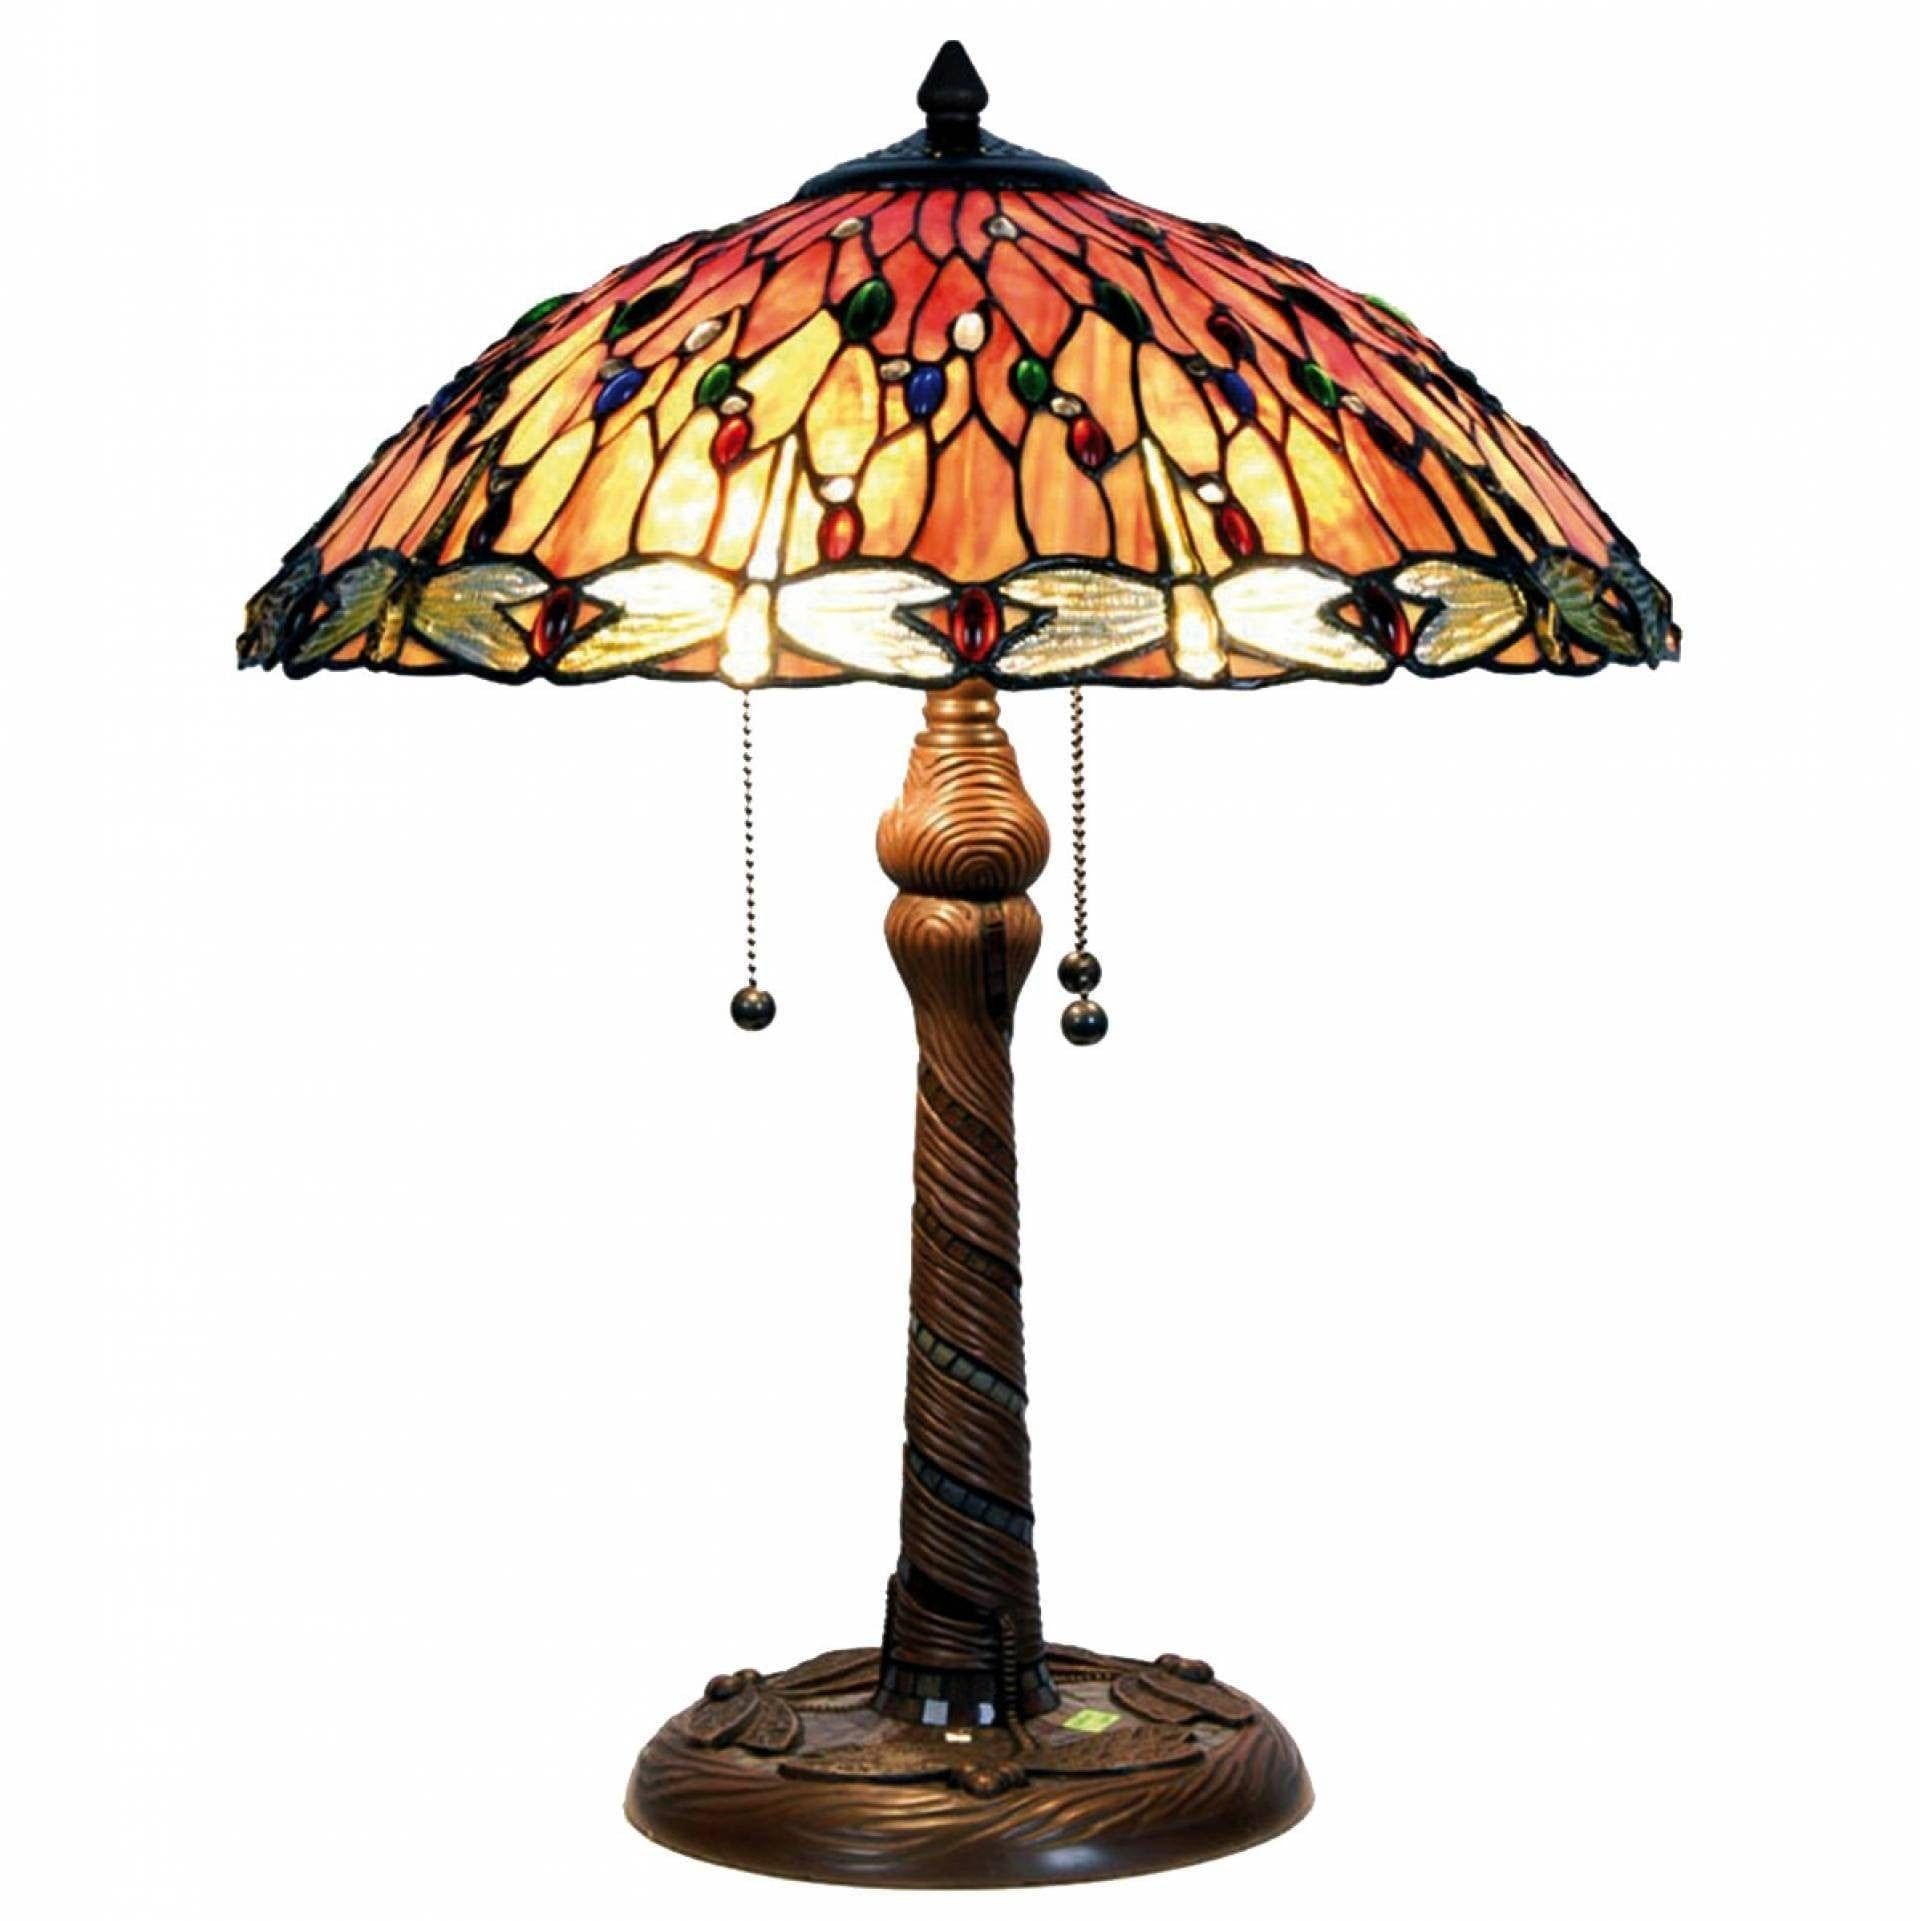 Red dragonfly tiffany table lamp by tiffany lighting direct large tiffany lamps red dragonfly tiffany lamp aloadofball Gallery